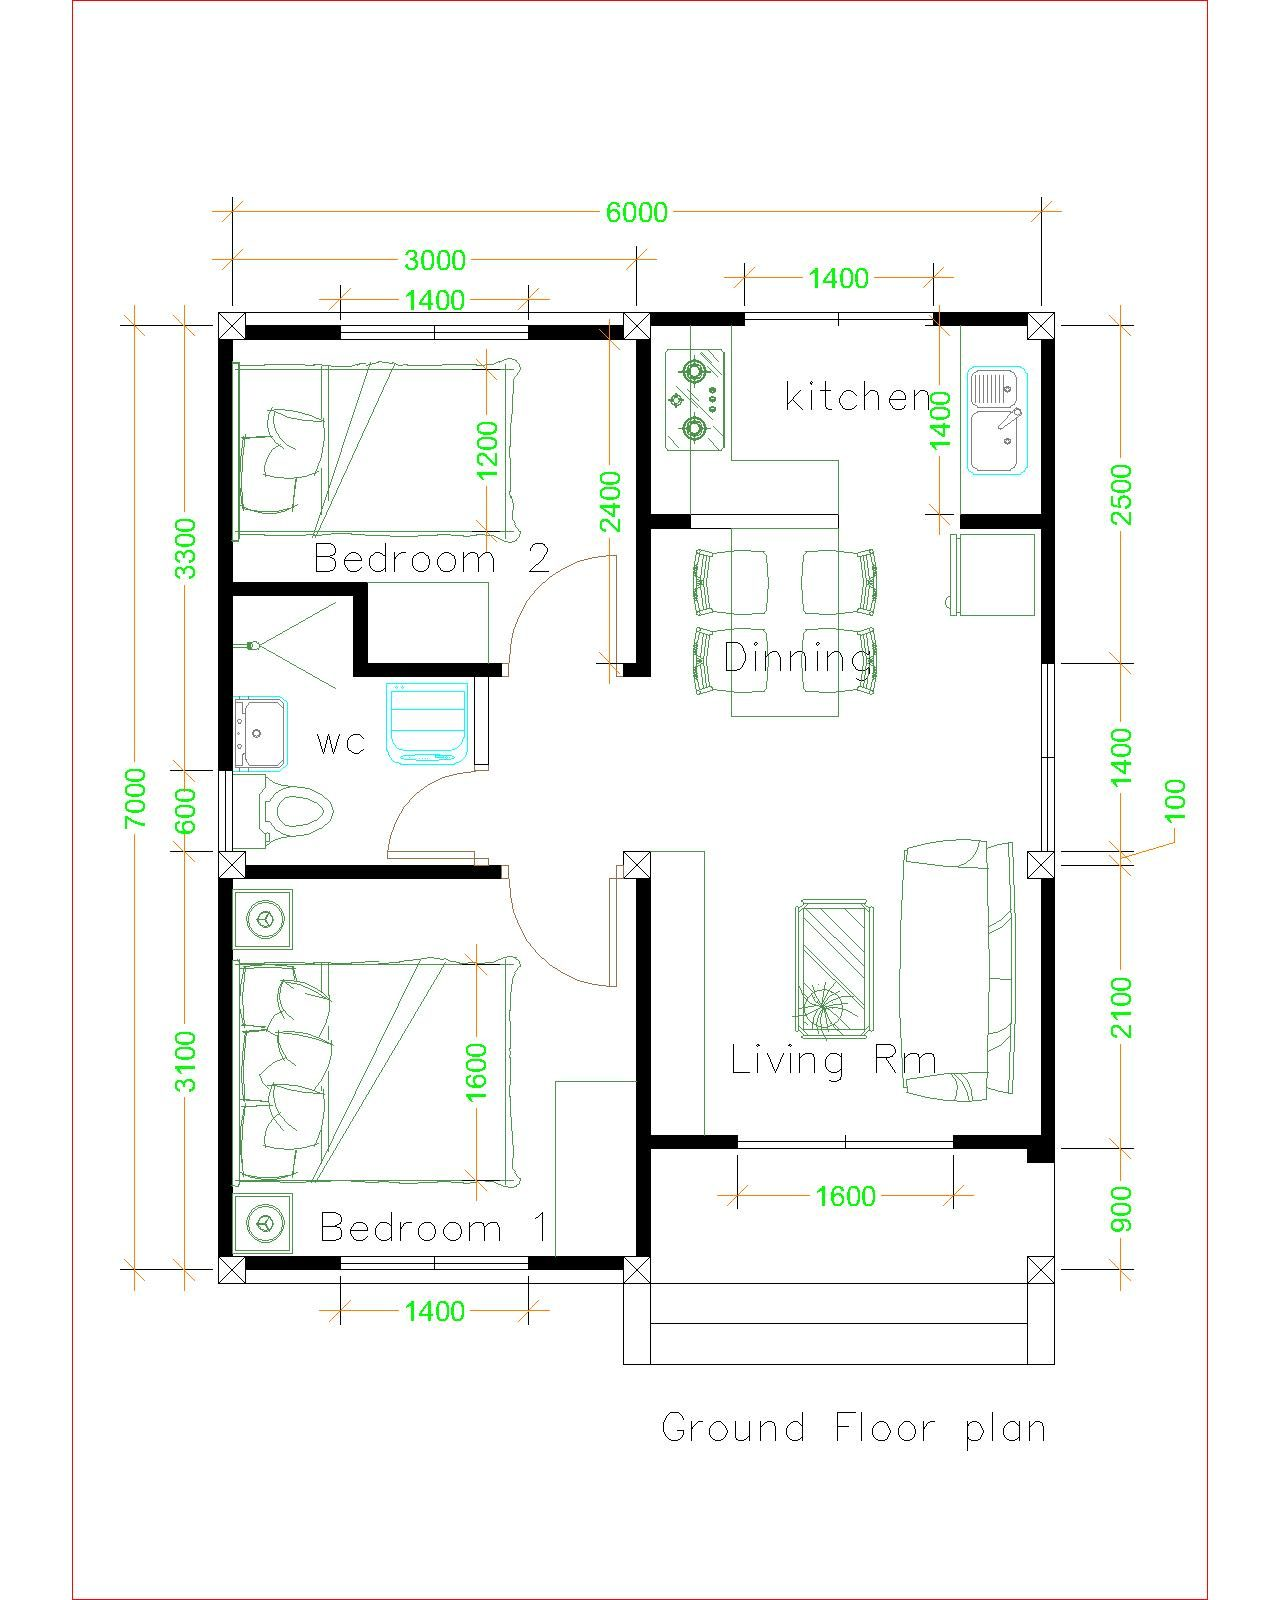 Simple House Plans 6x7 with 2 bedrooms